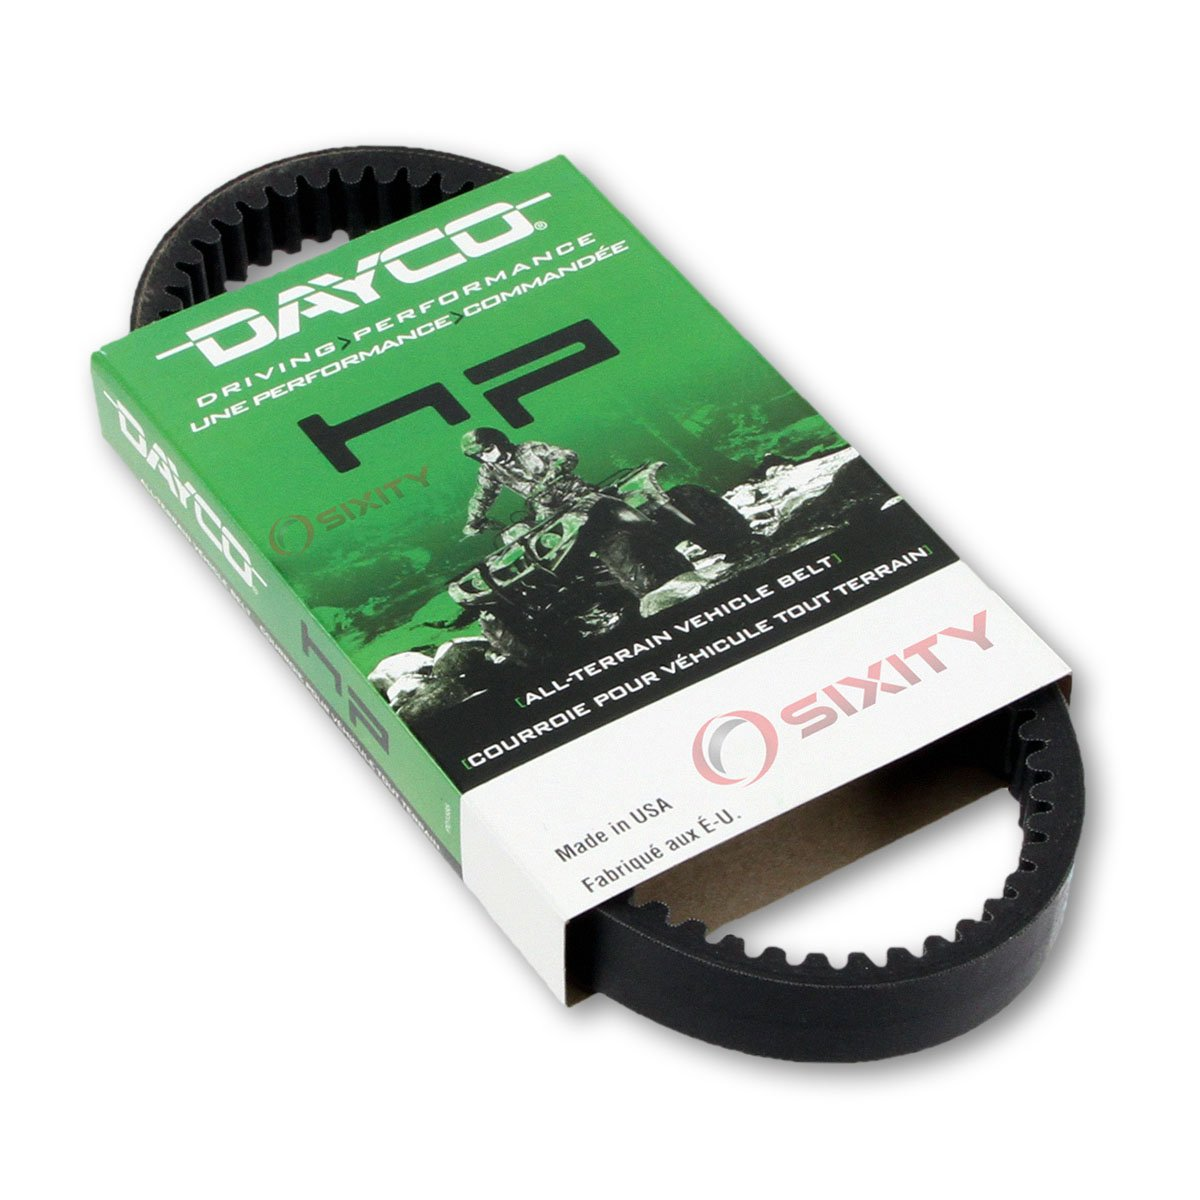 2004-2006 for Arctic Cat 650 V-2 4x4 Auto LE//TS Drive Belt Dayco HP LE TS ATV OEM Upgrade Replacement Transmission Belts